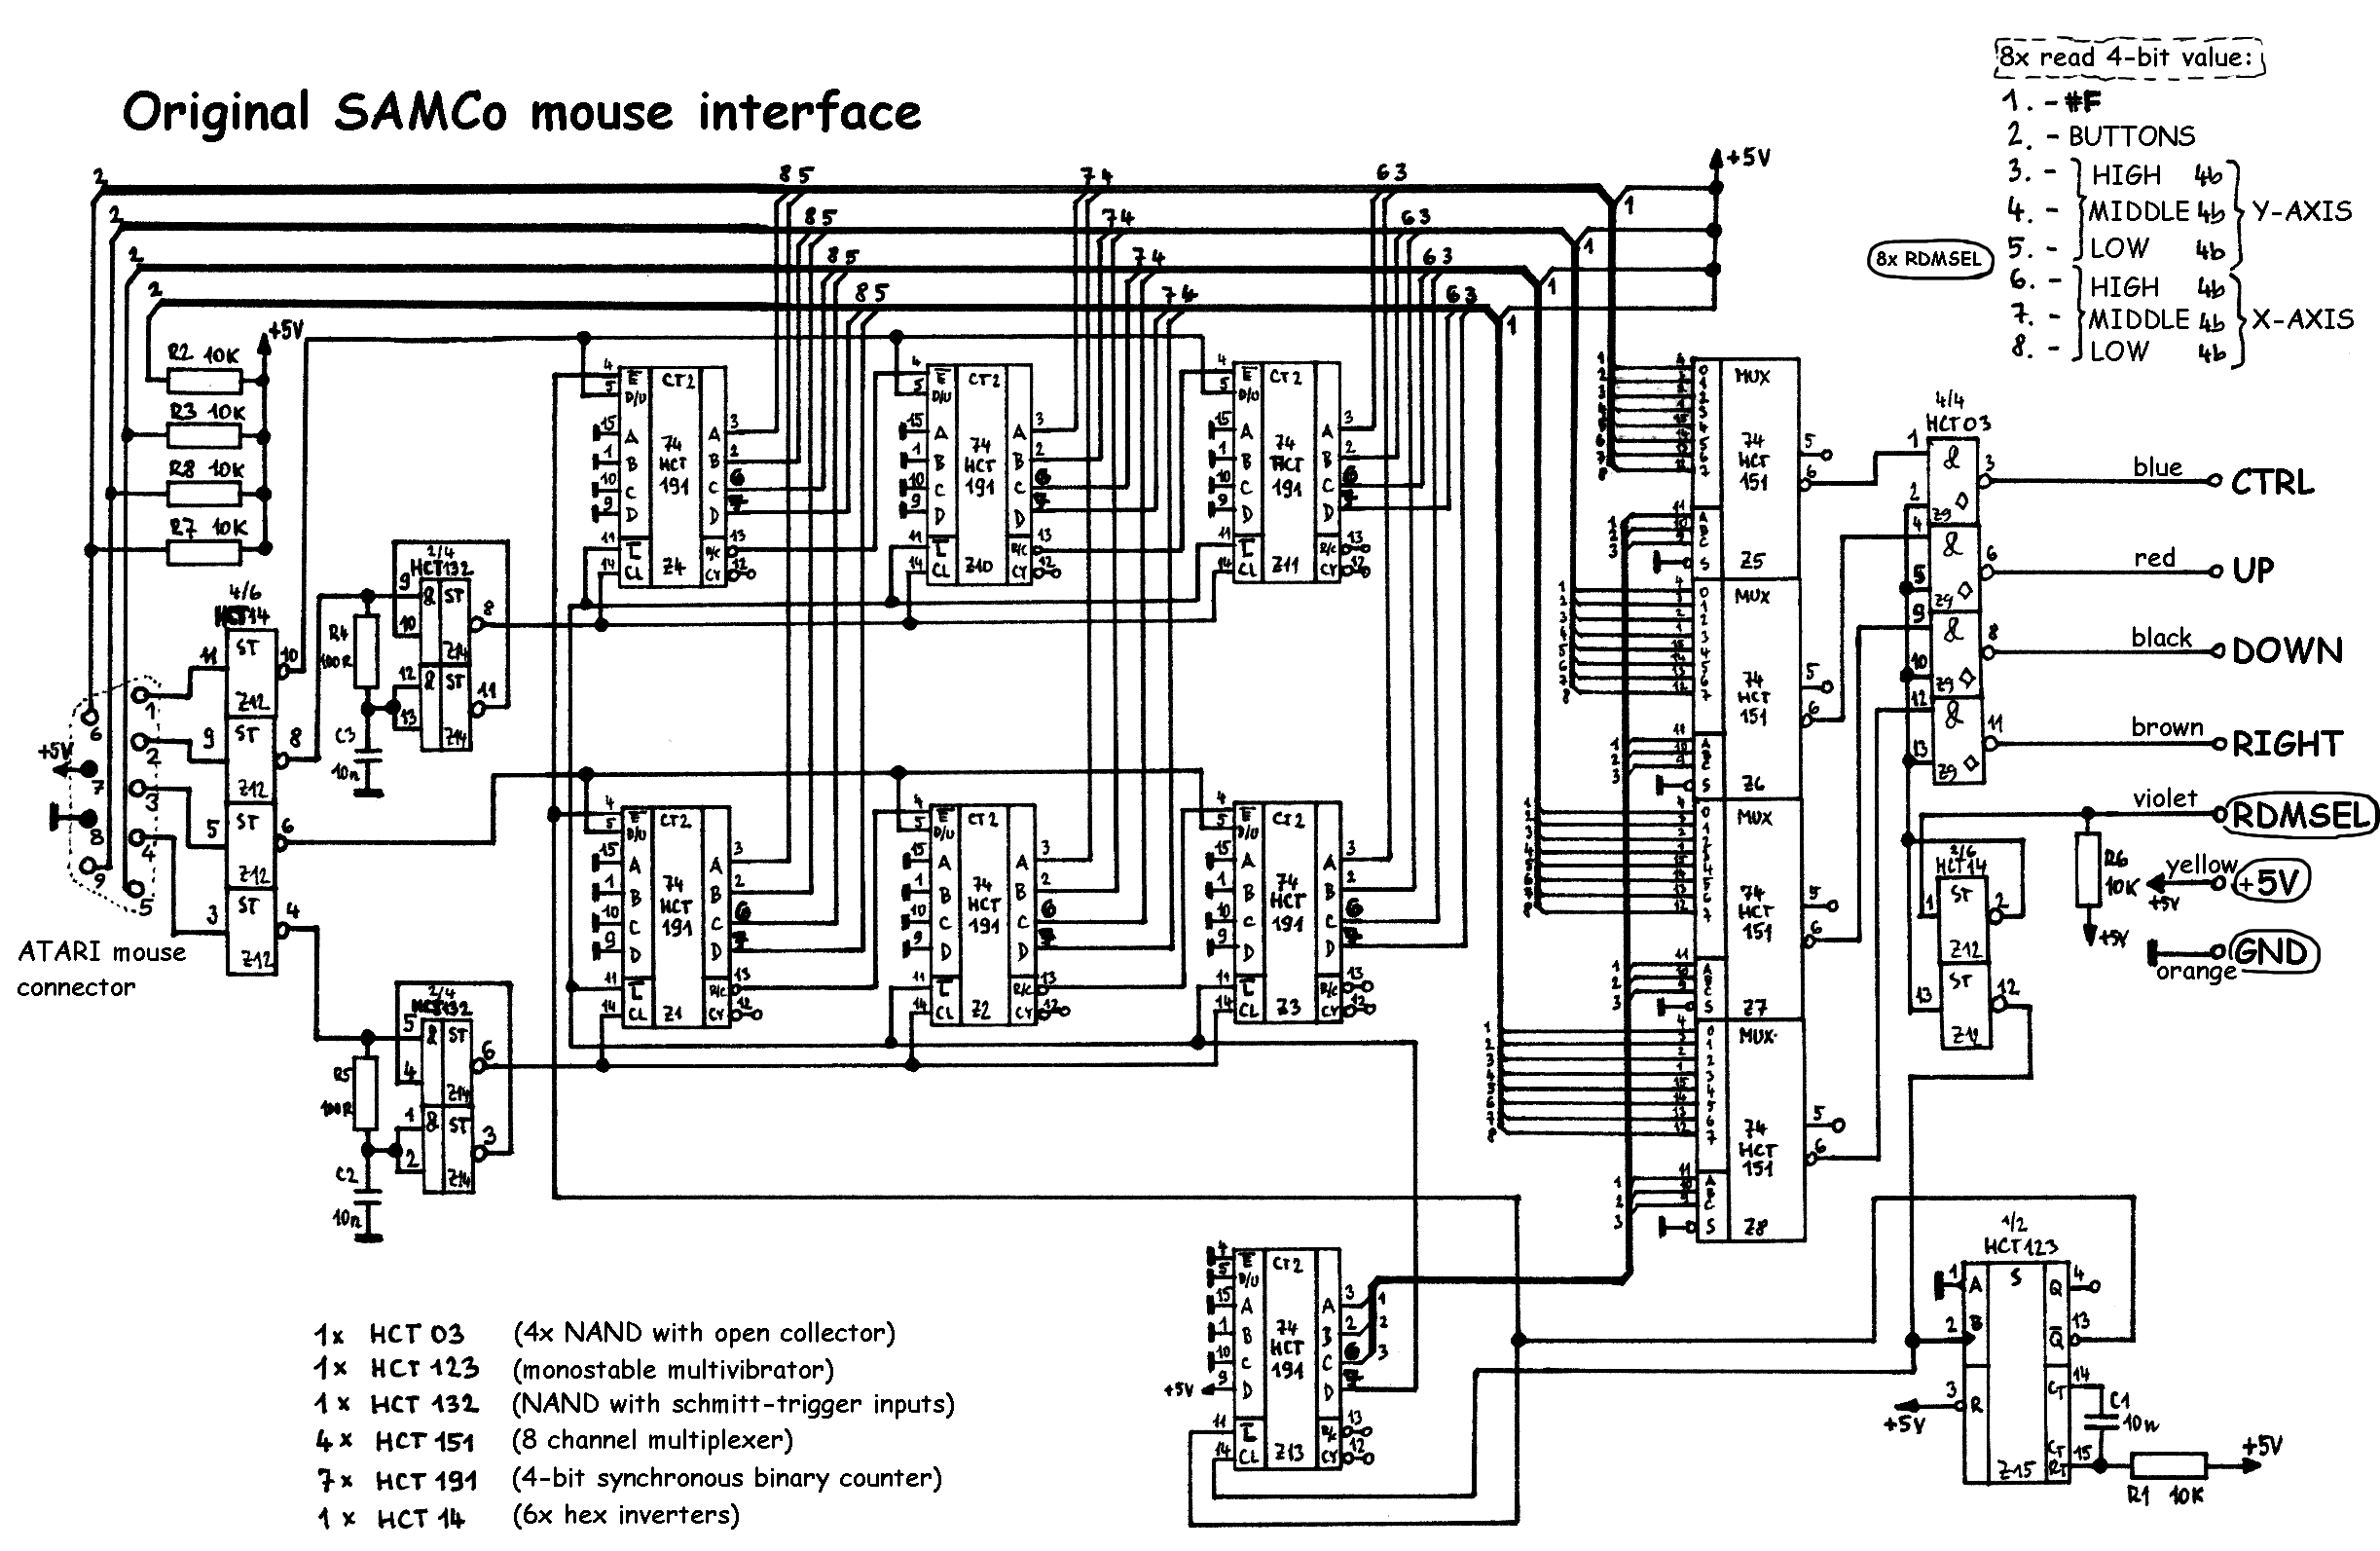 final schematic of original sam mouse interface